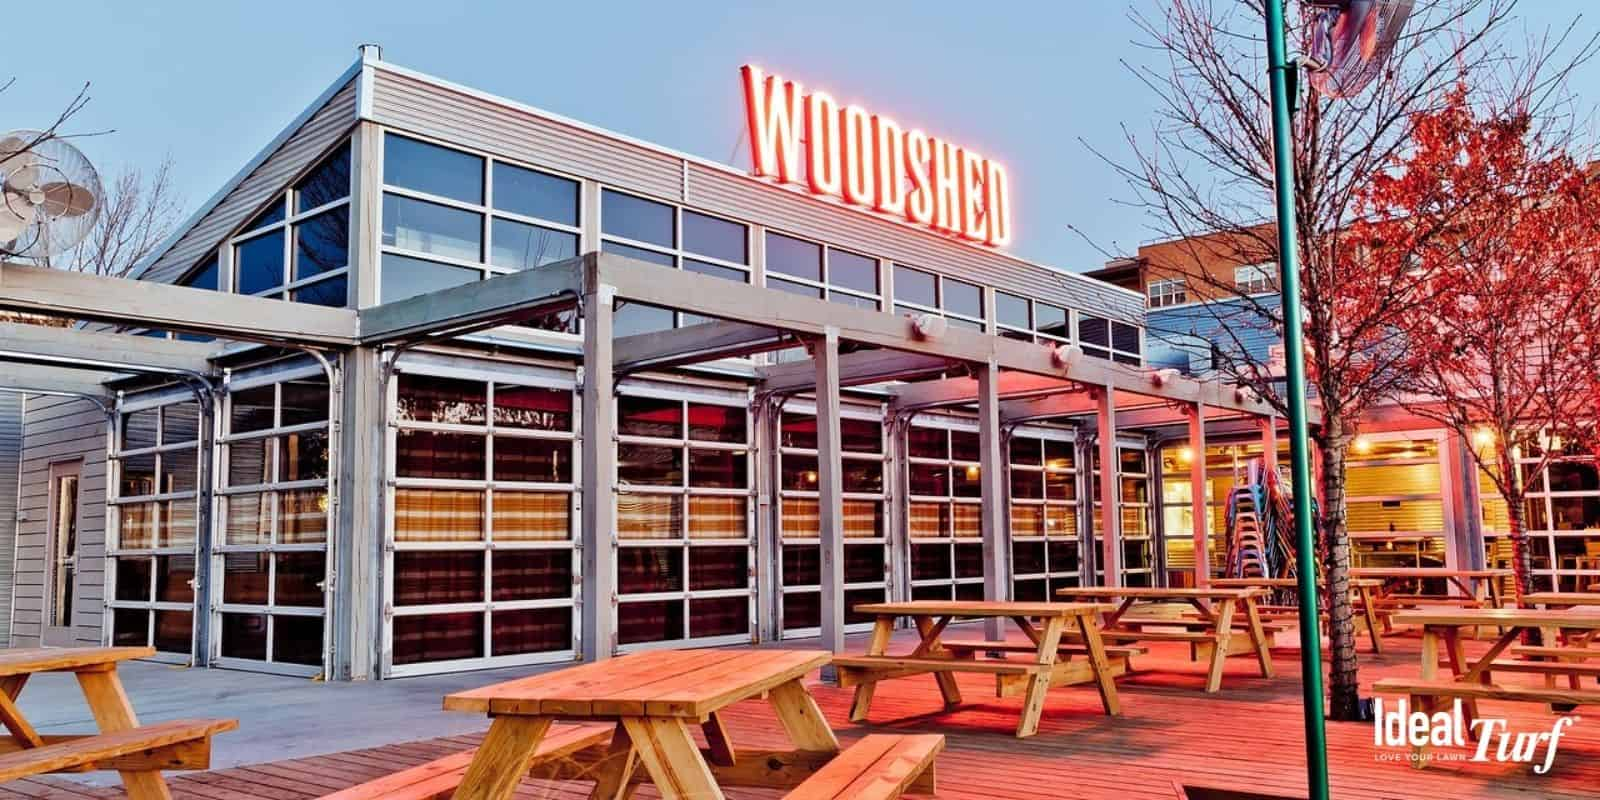 Outdoor patio area of The Woodshed Restaurant in Fort Worth